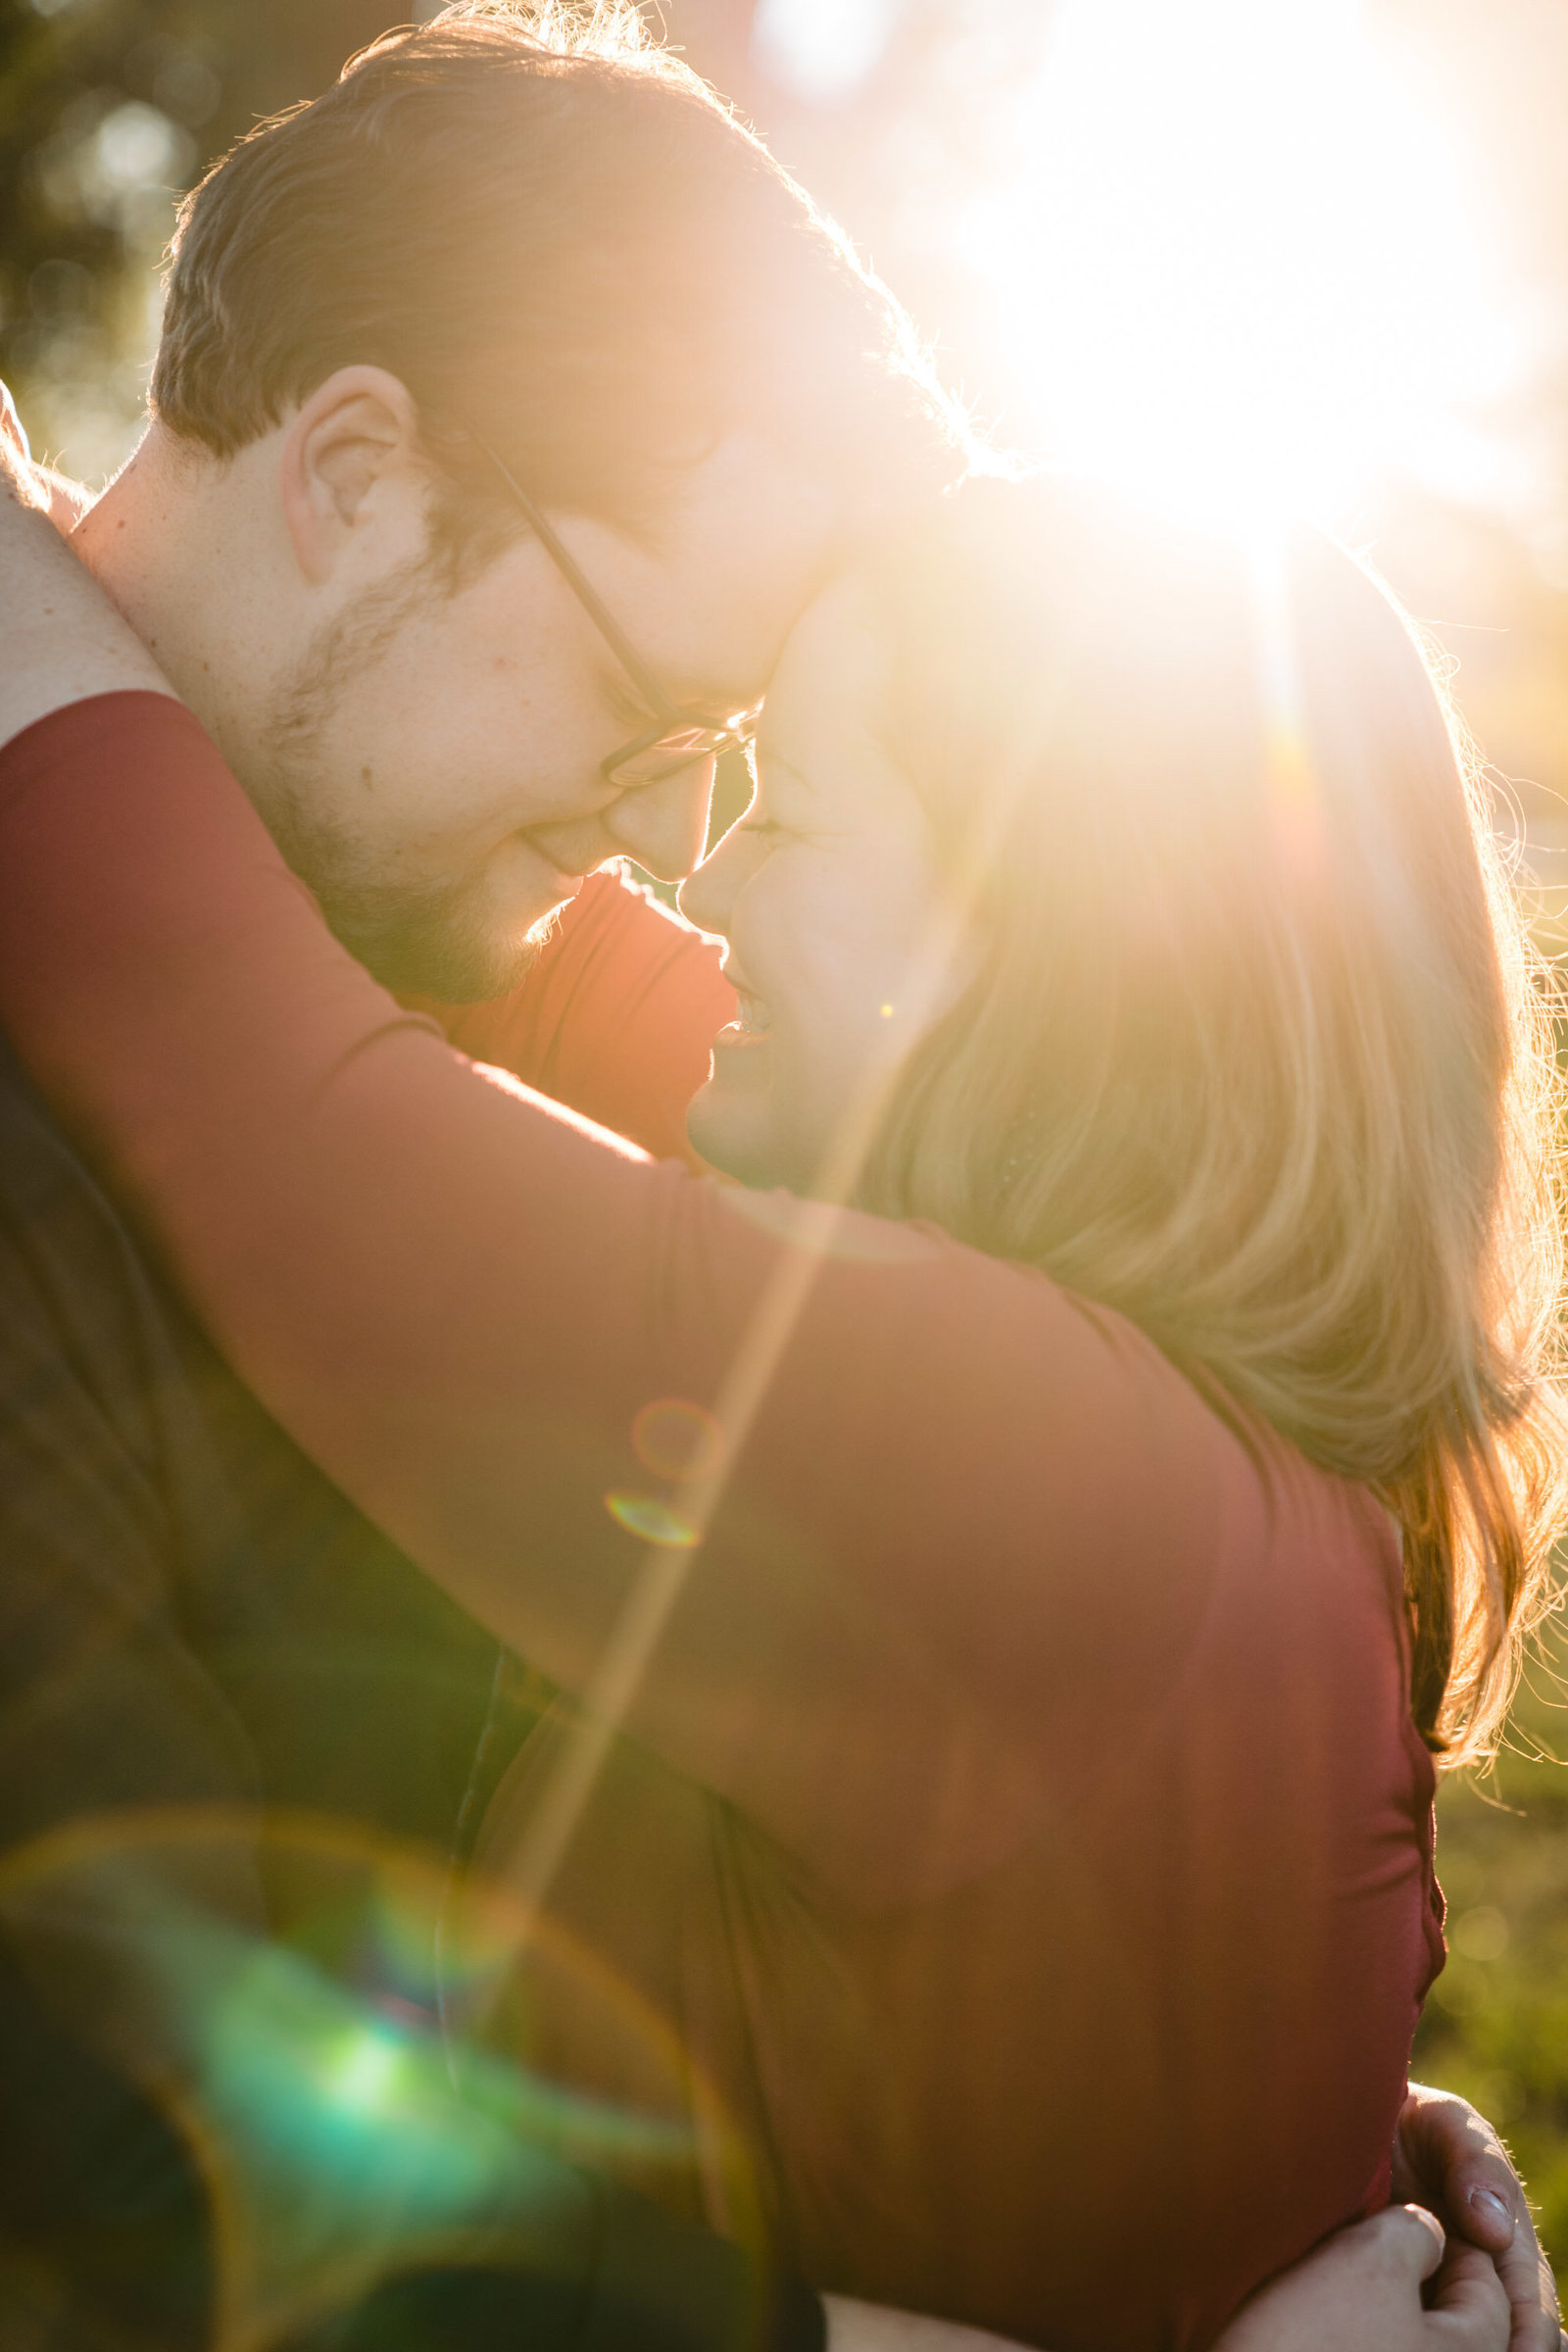 couple embracing in sunlight